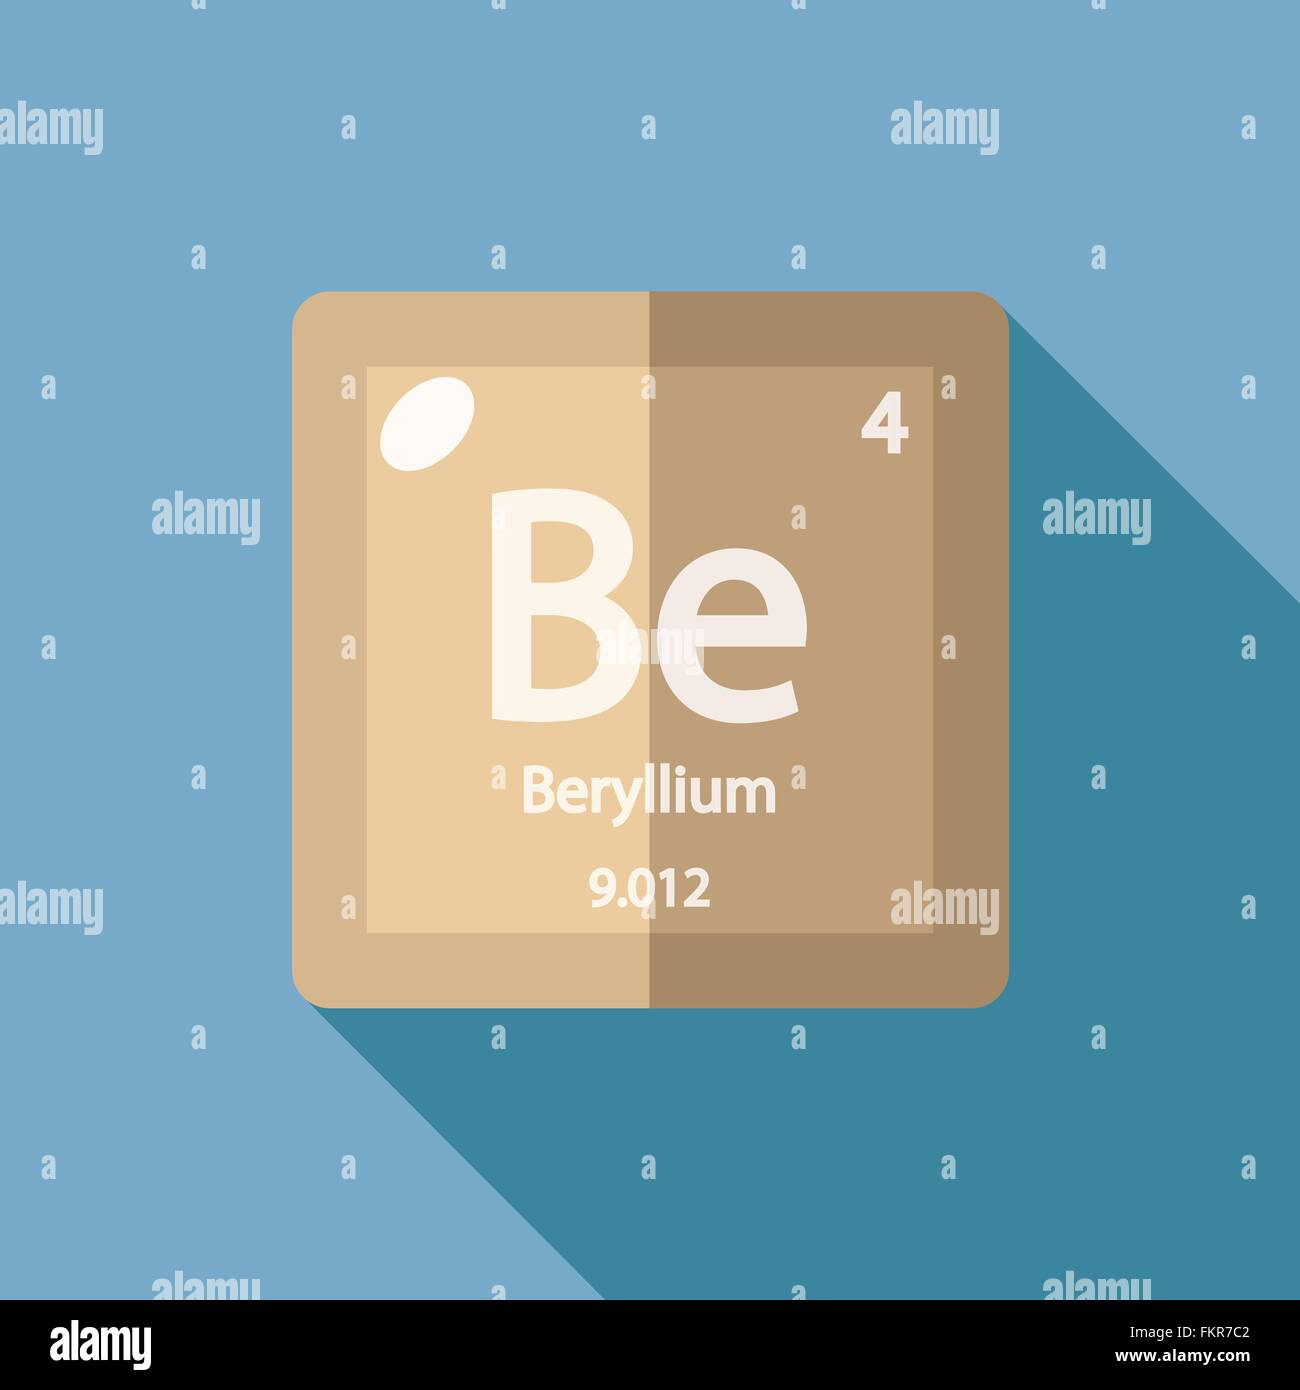 Chemical element beryllium flat stock vector art illustration chemical element beryllium flat buycottarizona Image collections